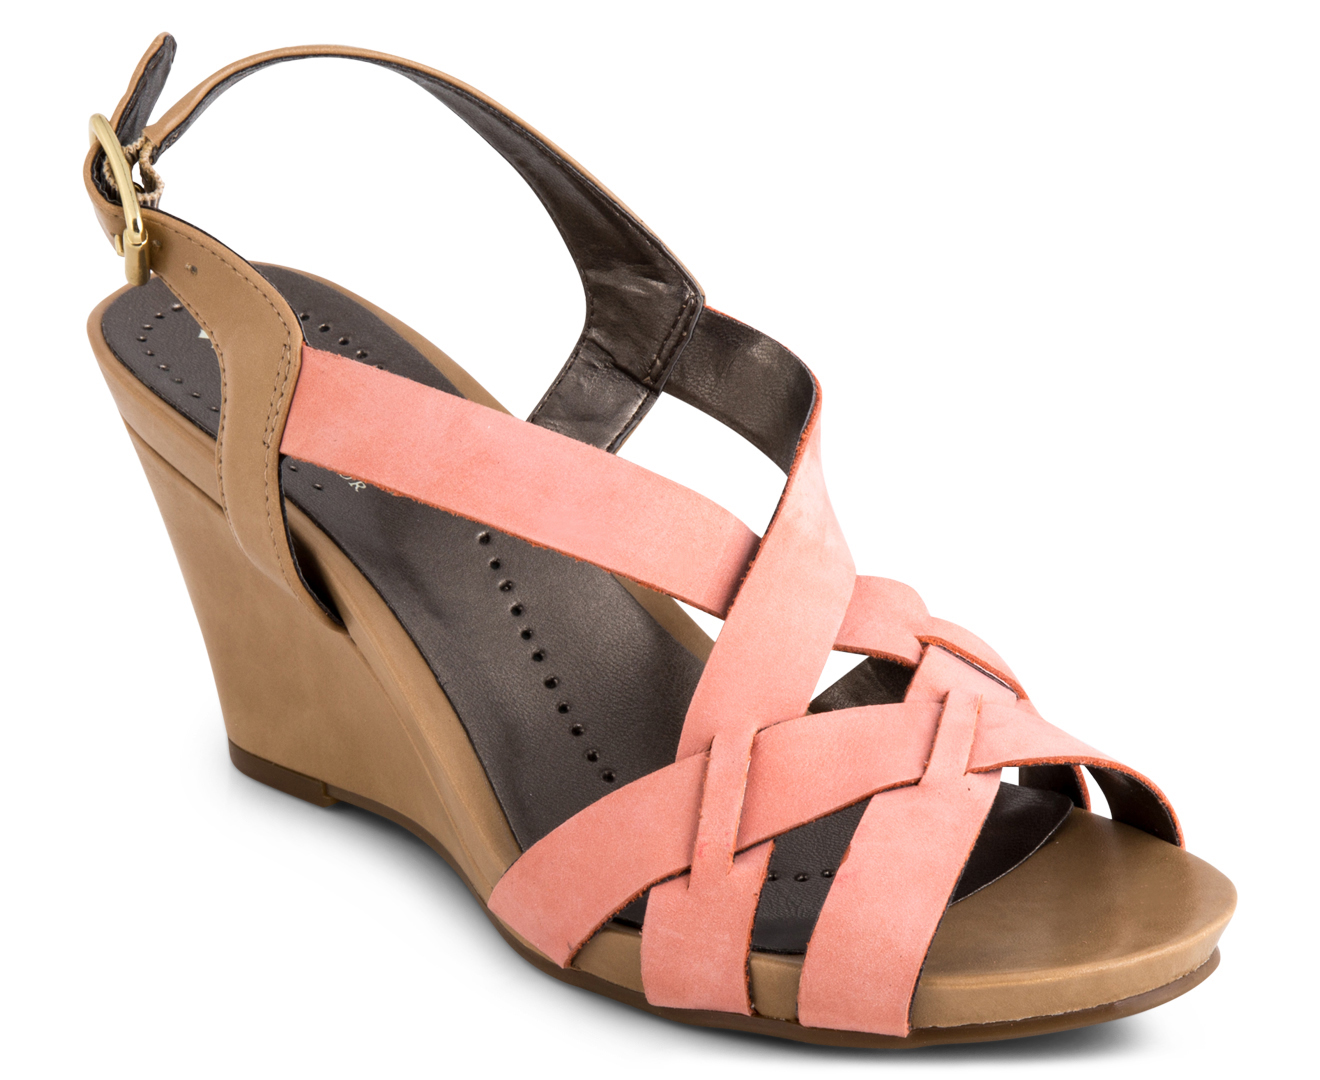 Are Naturalizer Shoes Good